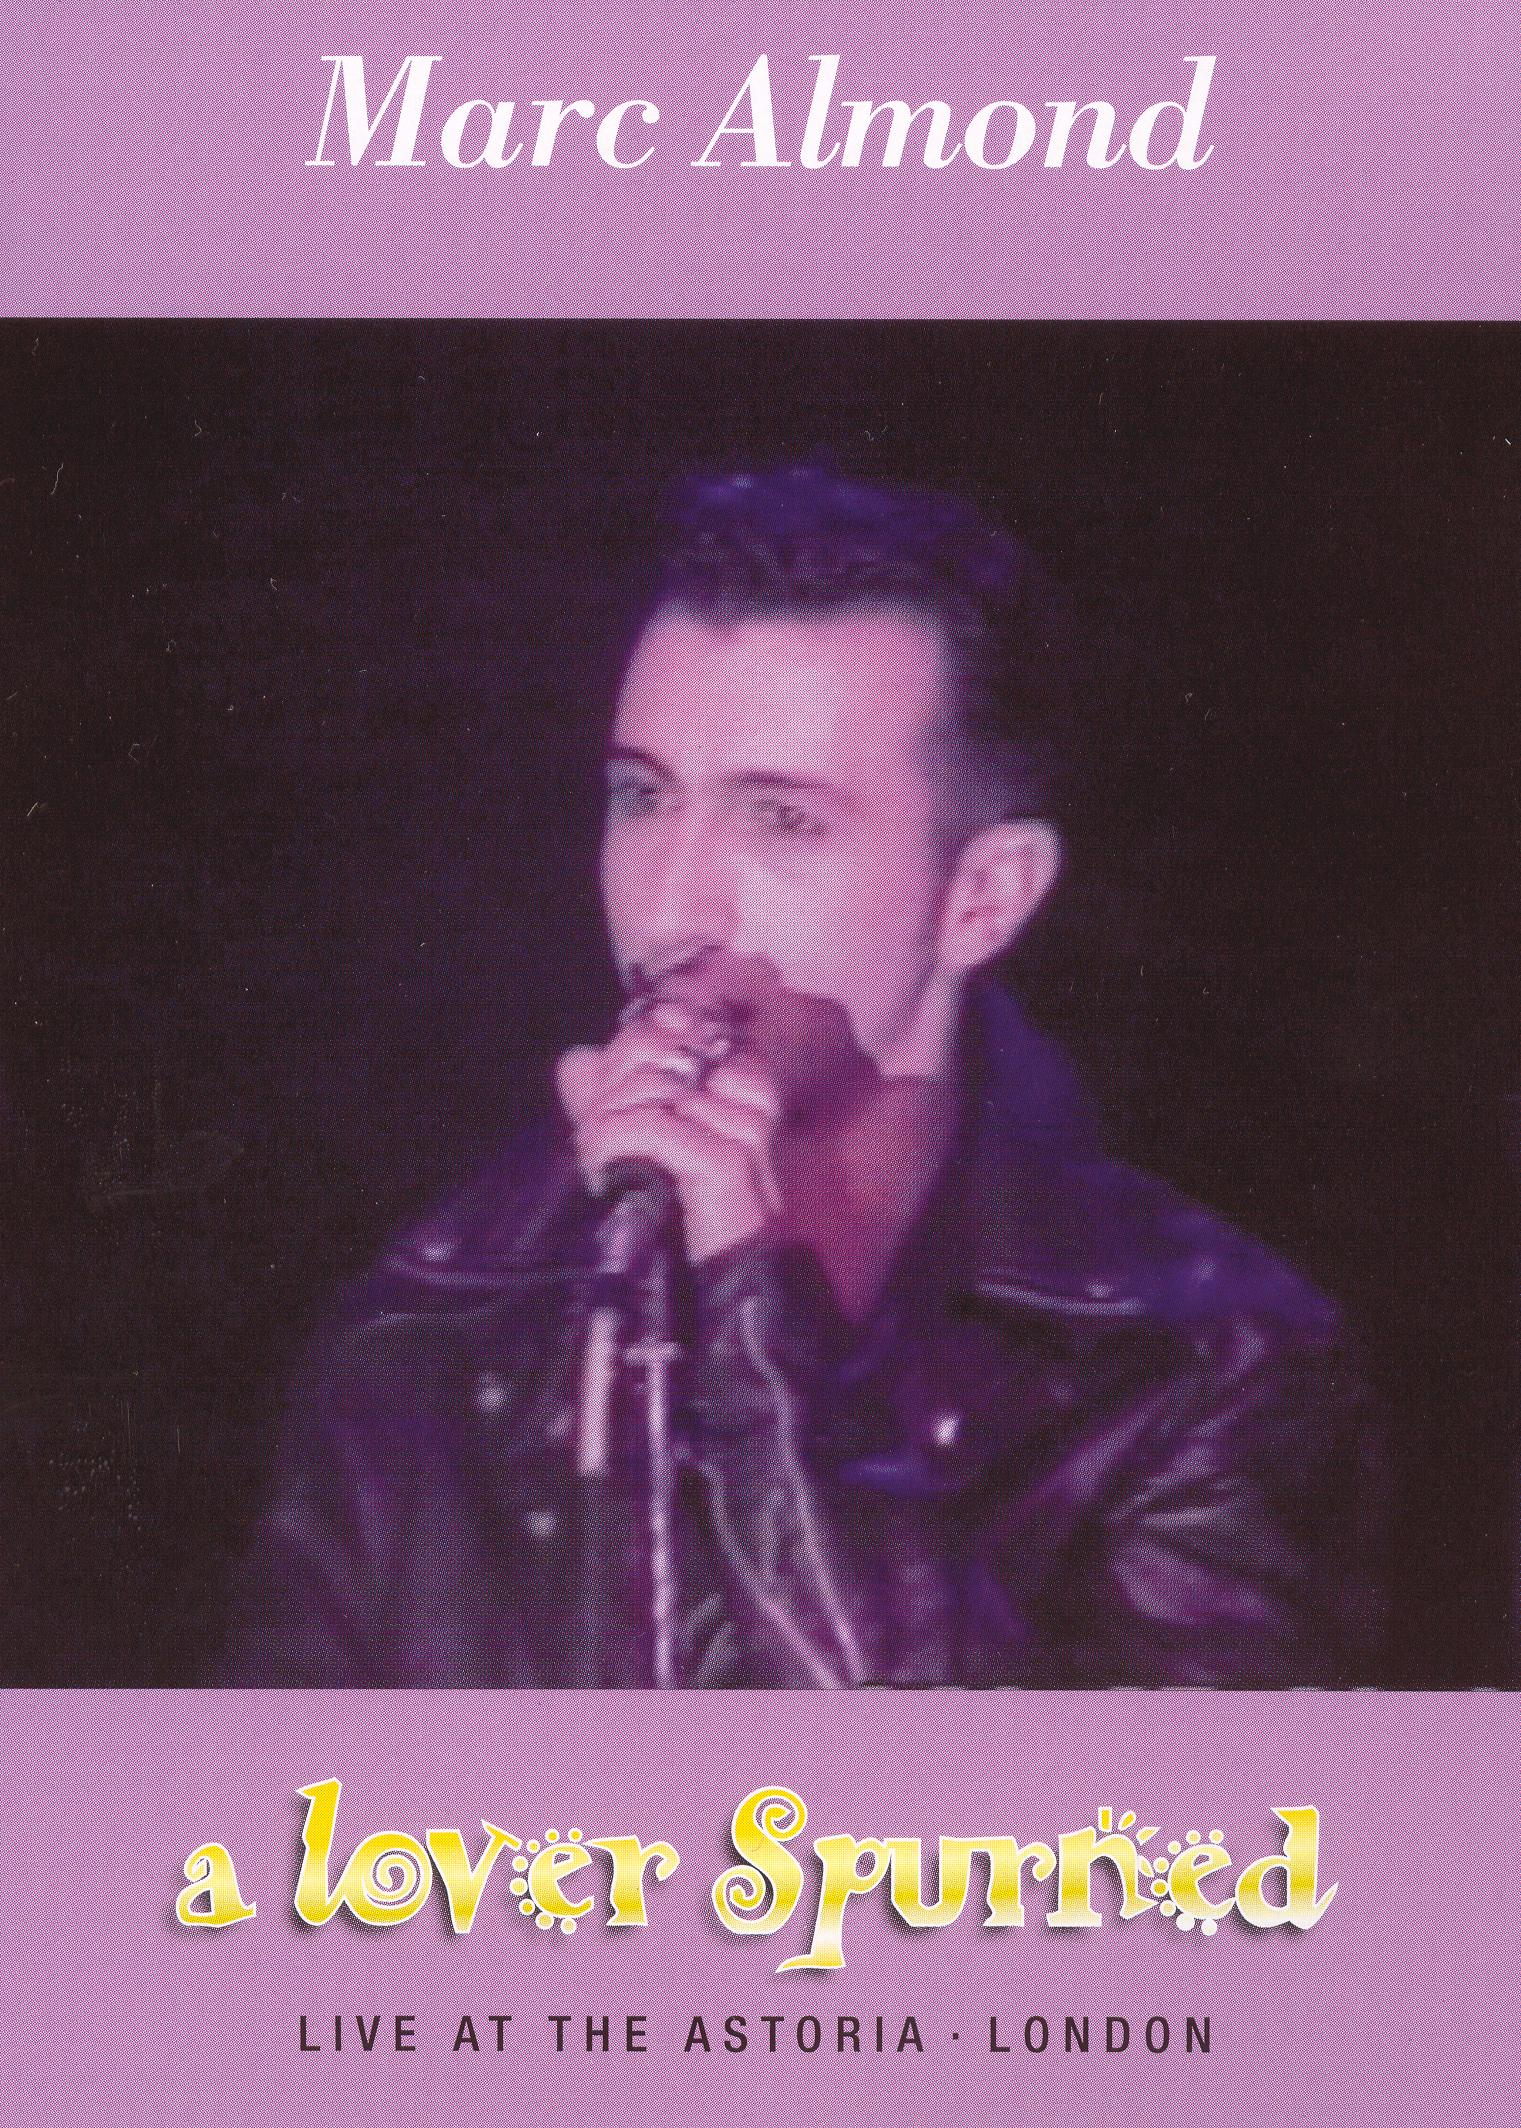 Marc Almond: A Lover Spurned - Live at The Astoria, London